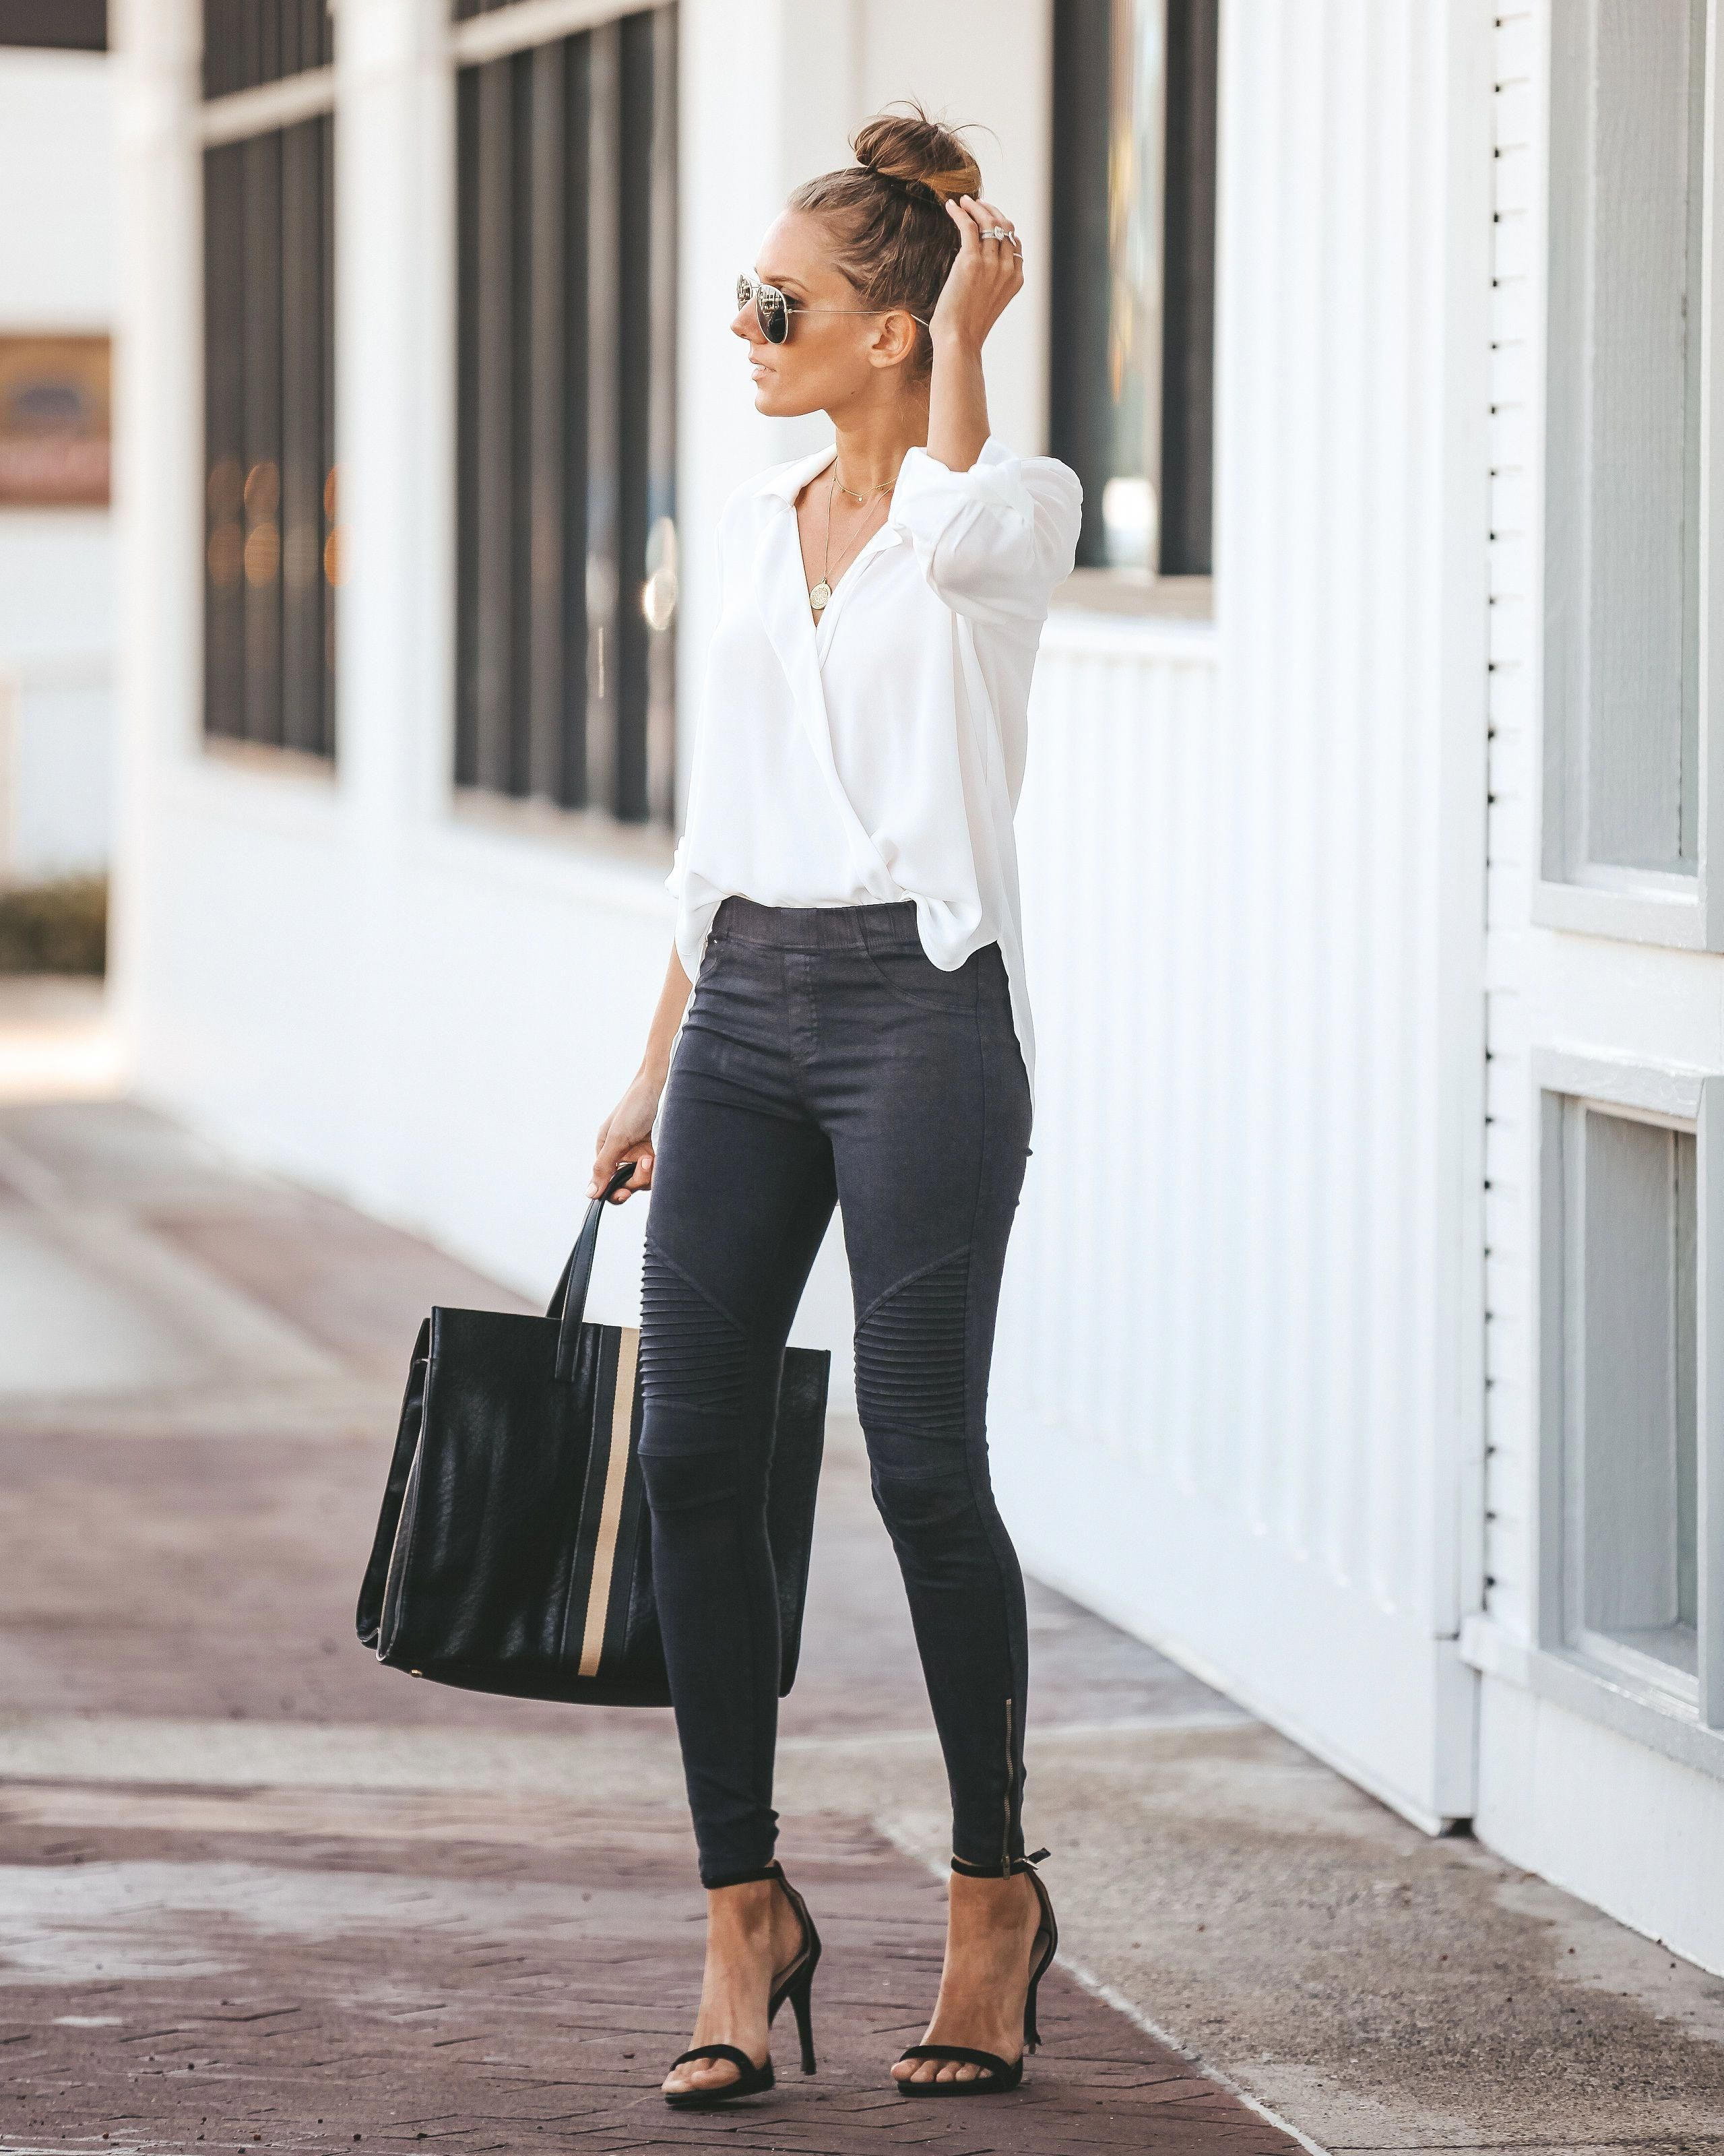 Best Smart Casual Fashion Women Smartcasualfashionwomen Work Outfits Women Casual Work Outfits Summer Work Outfits